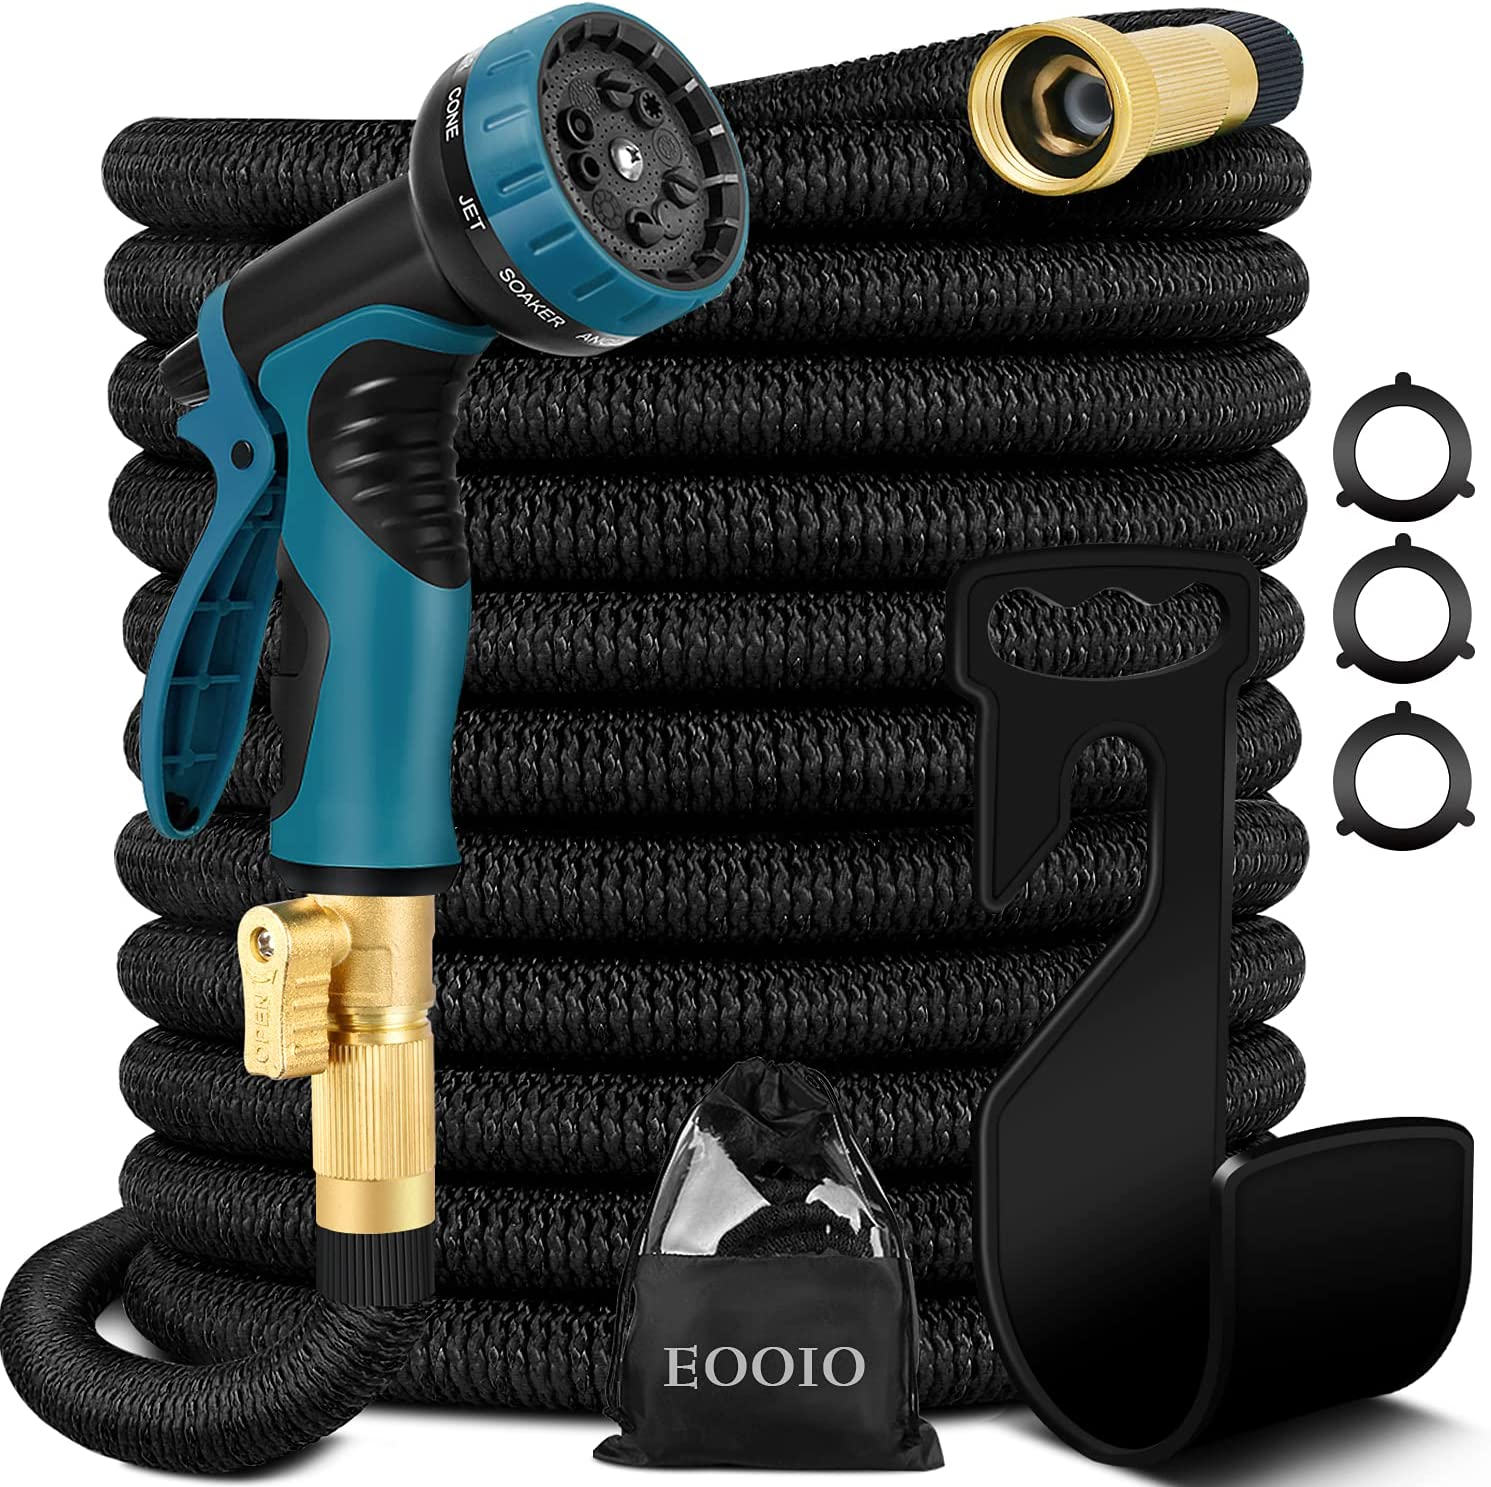 100ft Expandable Garden Hose - Flexible Water Hose with 3/4 Solid Brass Valve, Durable 4-Layers Latex, 10 Function Spray Nozzle, Yard Hoses